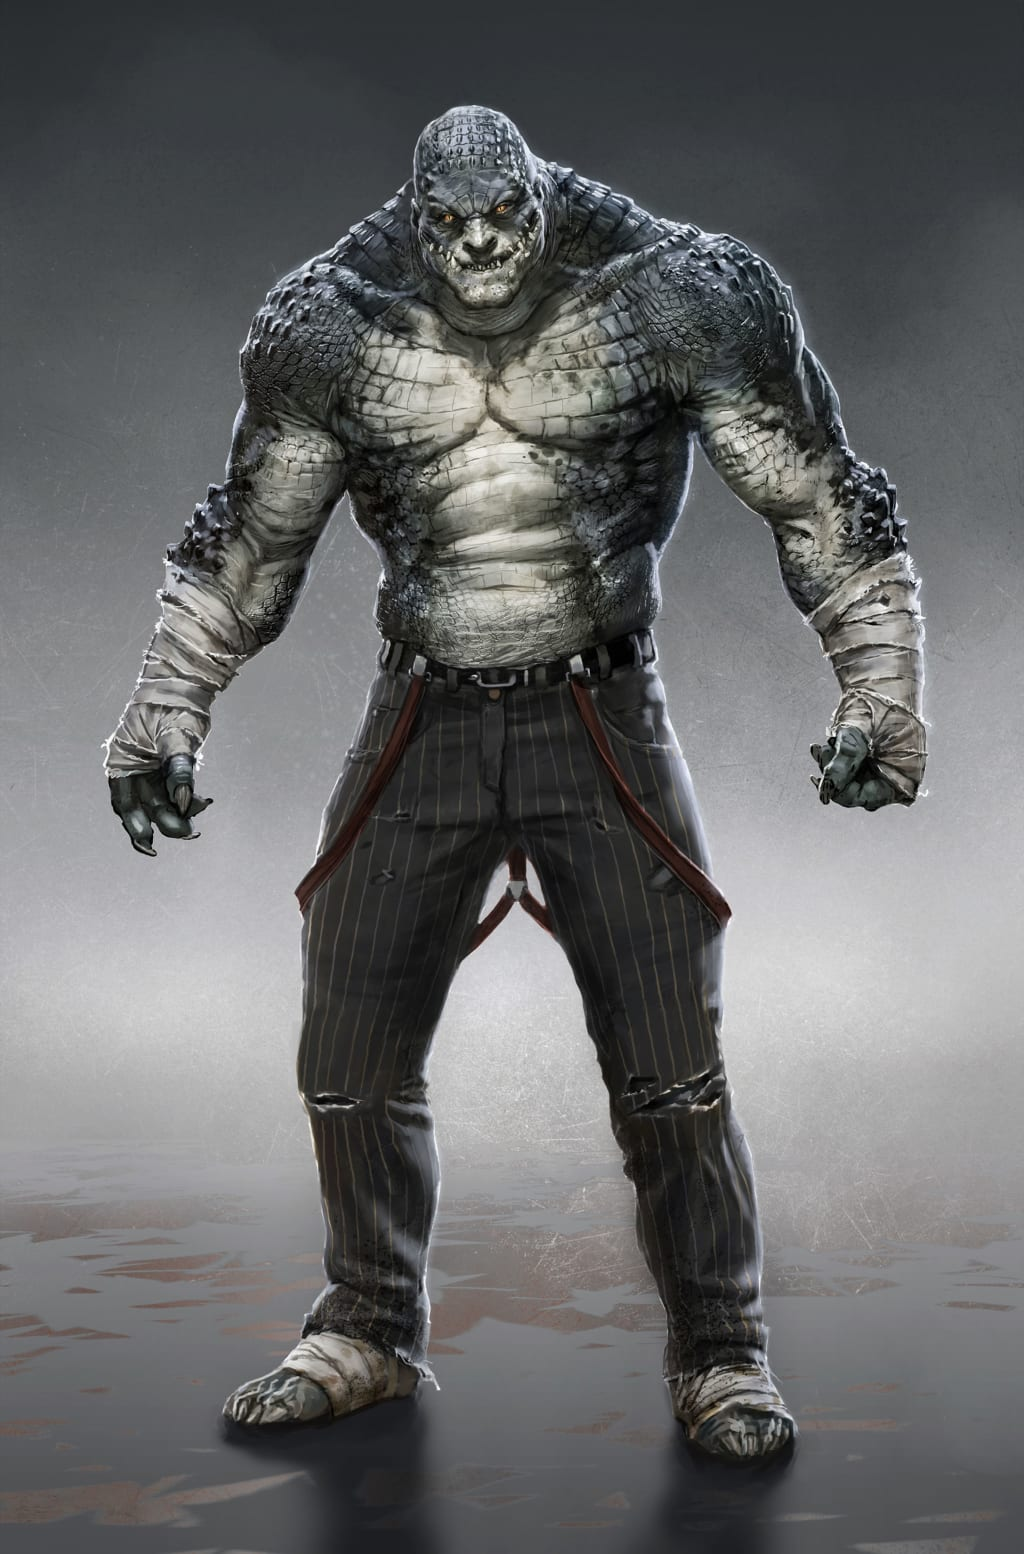 How To Build Killer Croc in The Pathfinder RPG